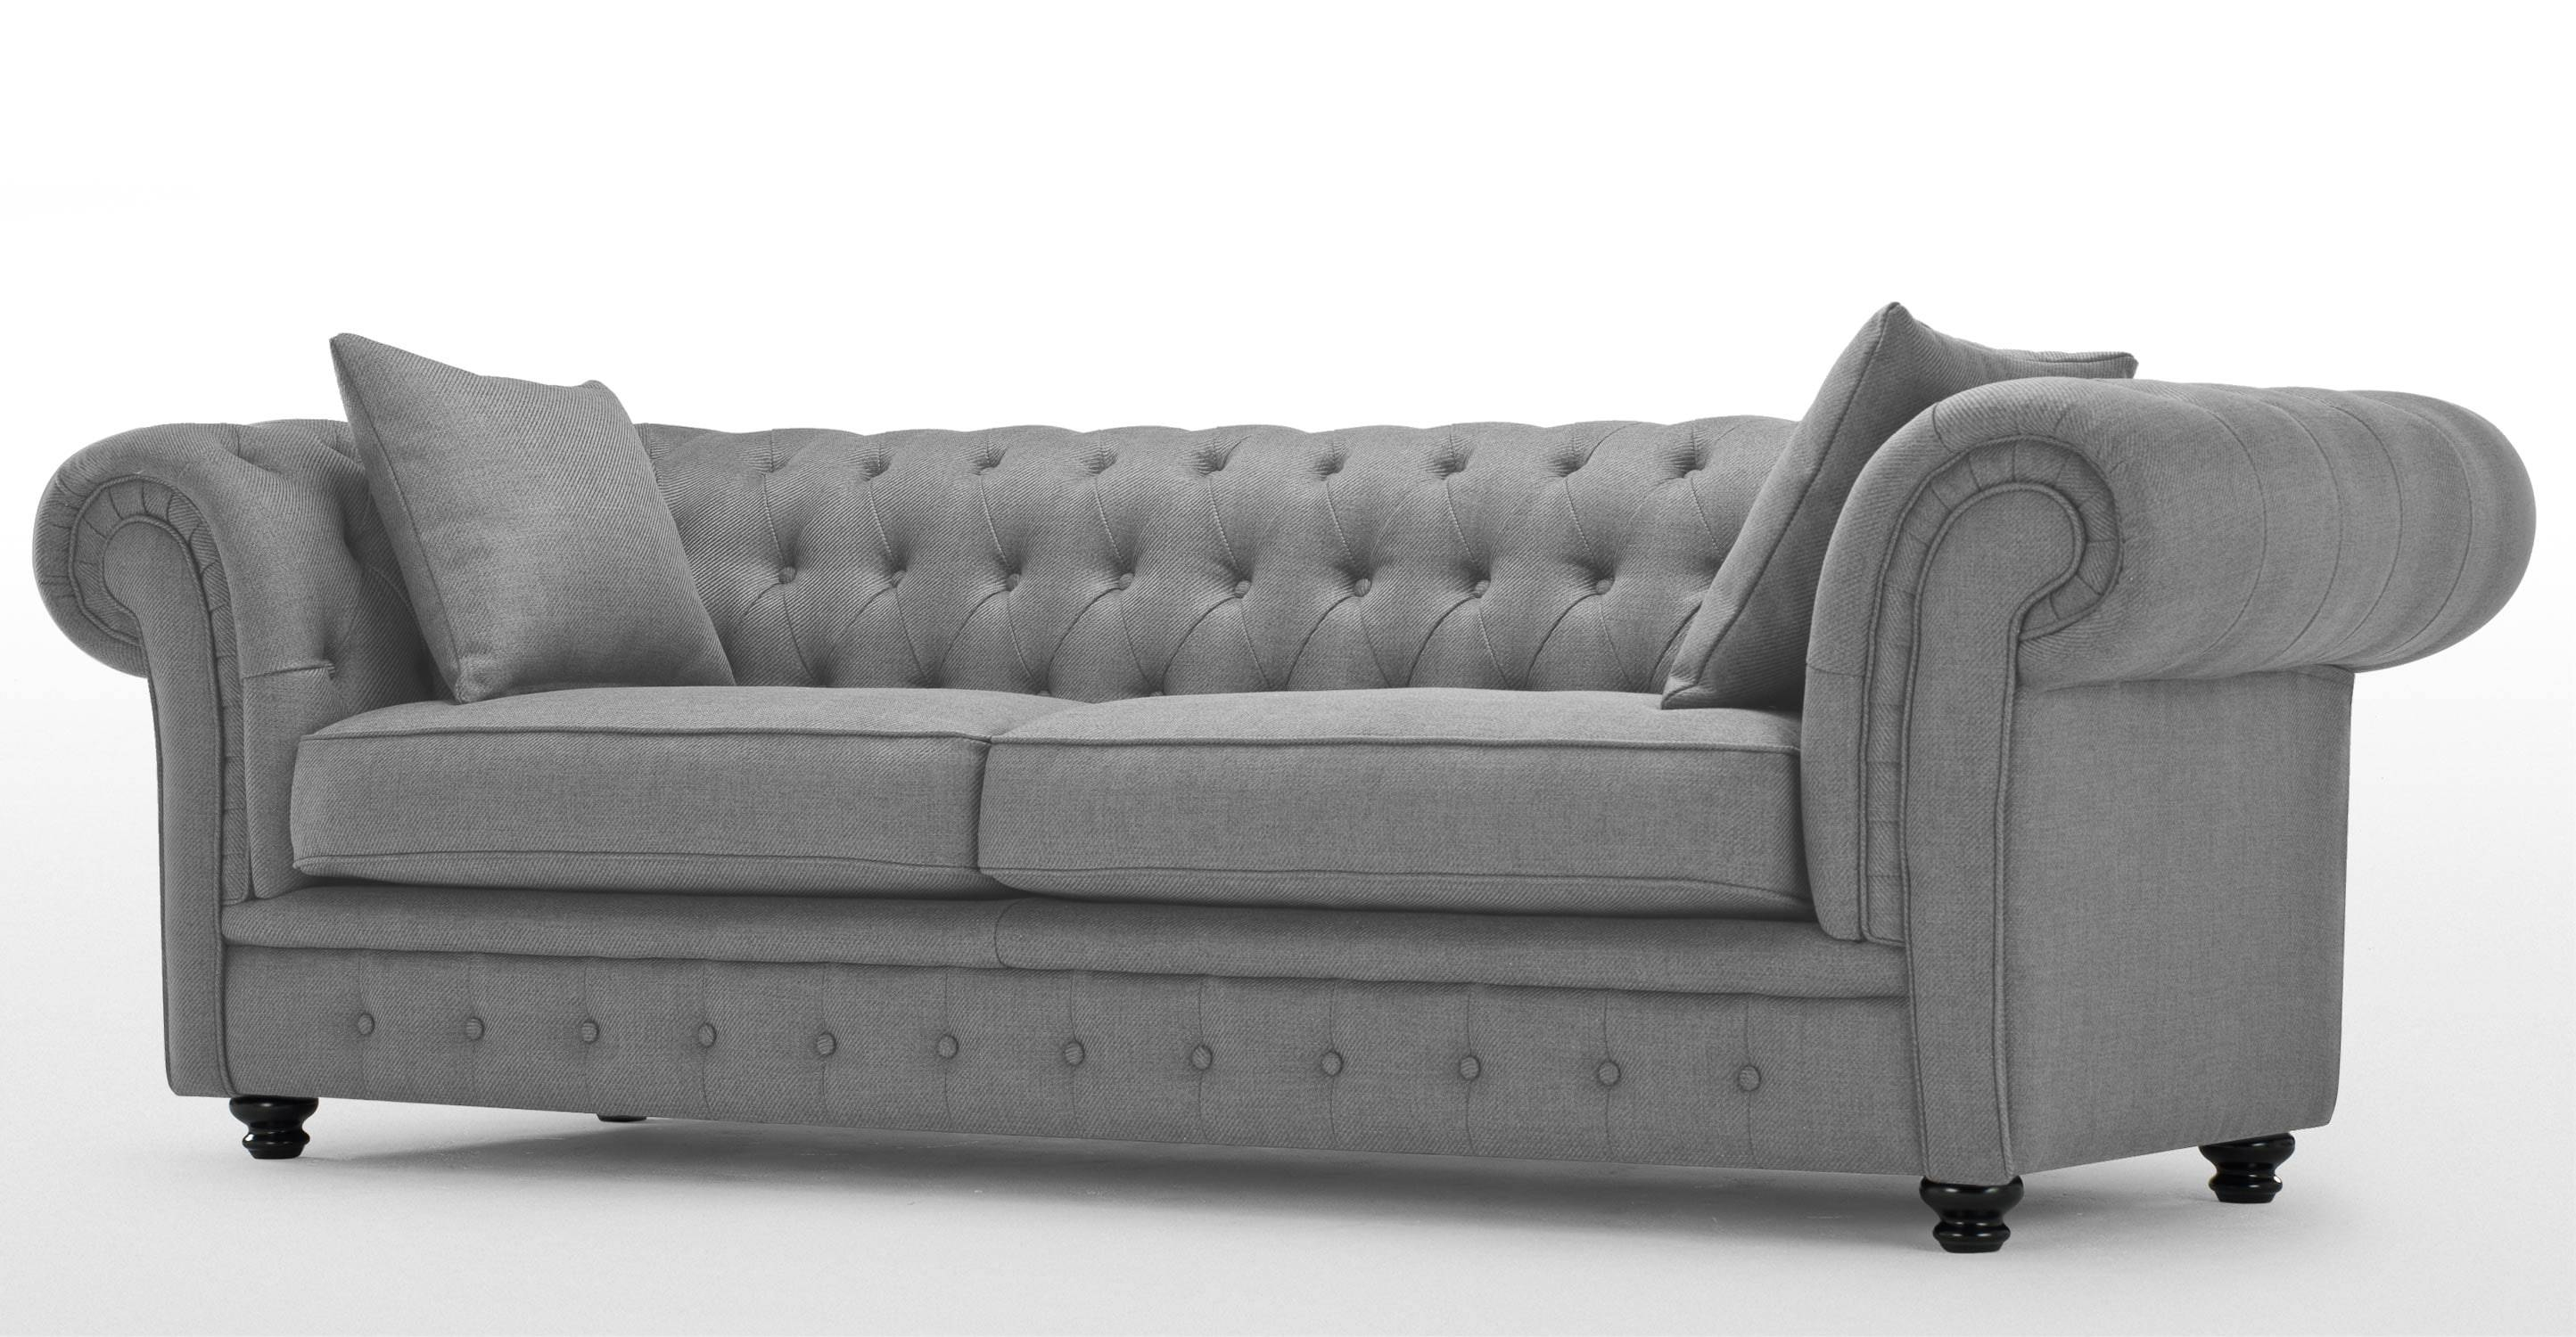 Branagh 3 Seater Grey Chesterfield Sofa | Made With Chesterfield Sofas (View 4 of 30)